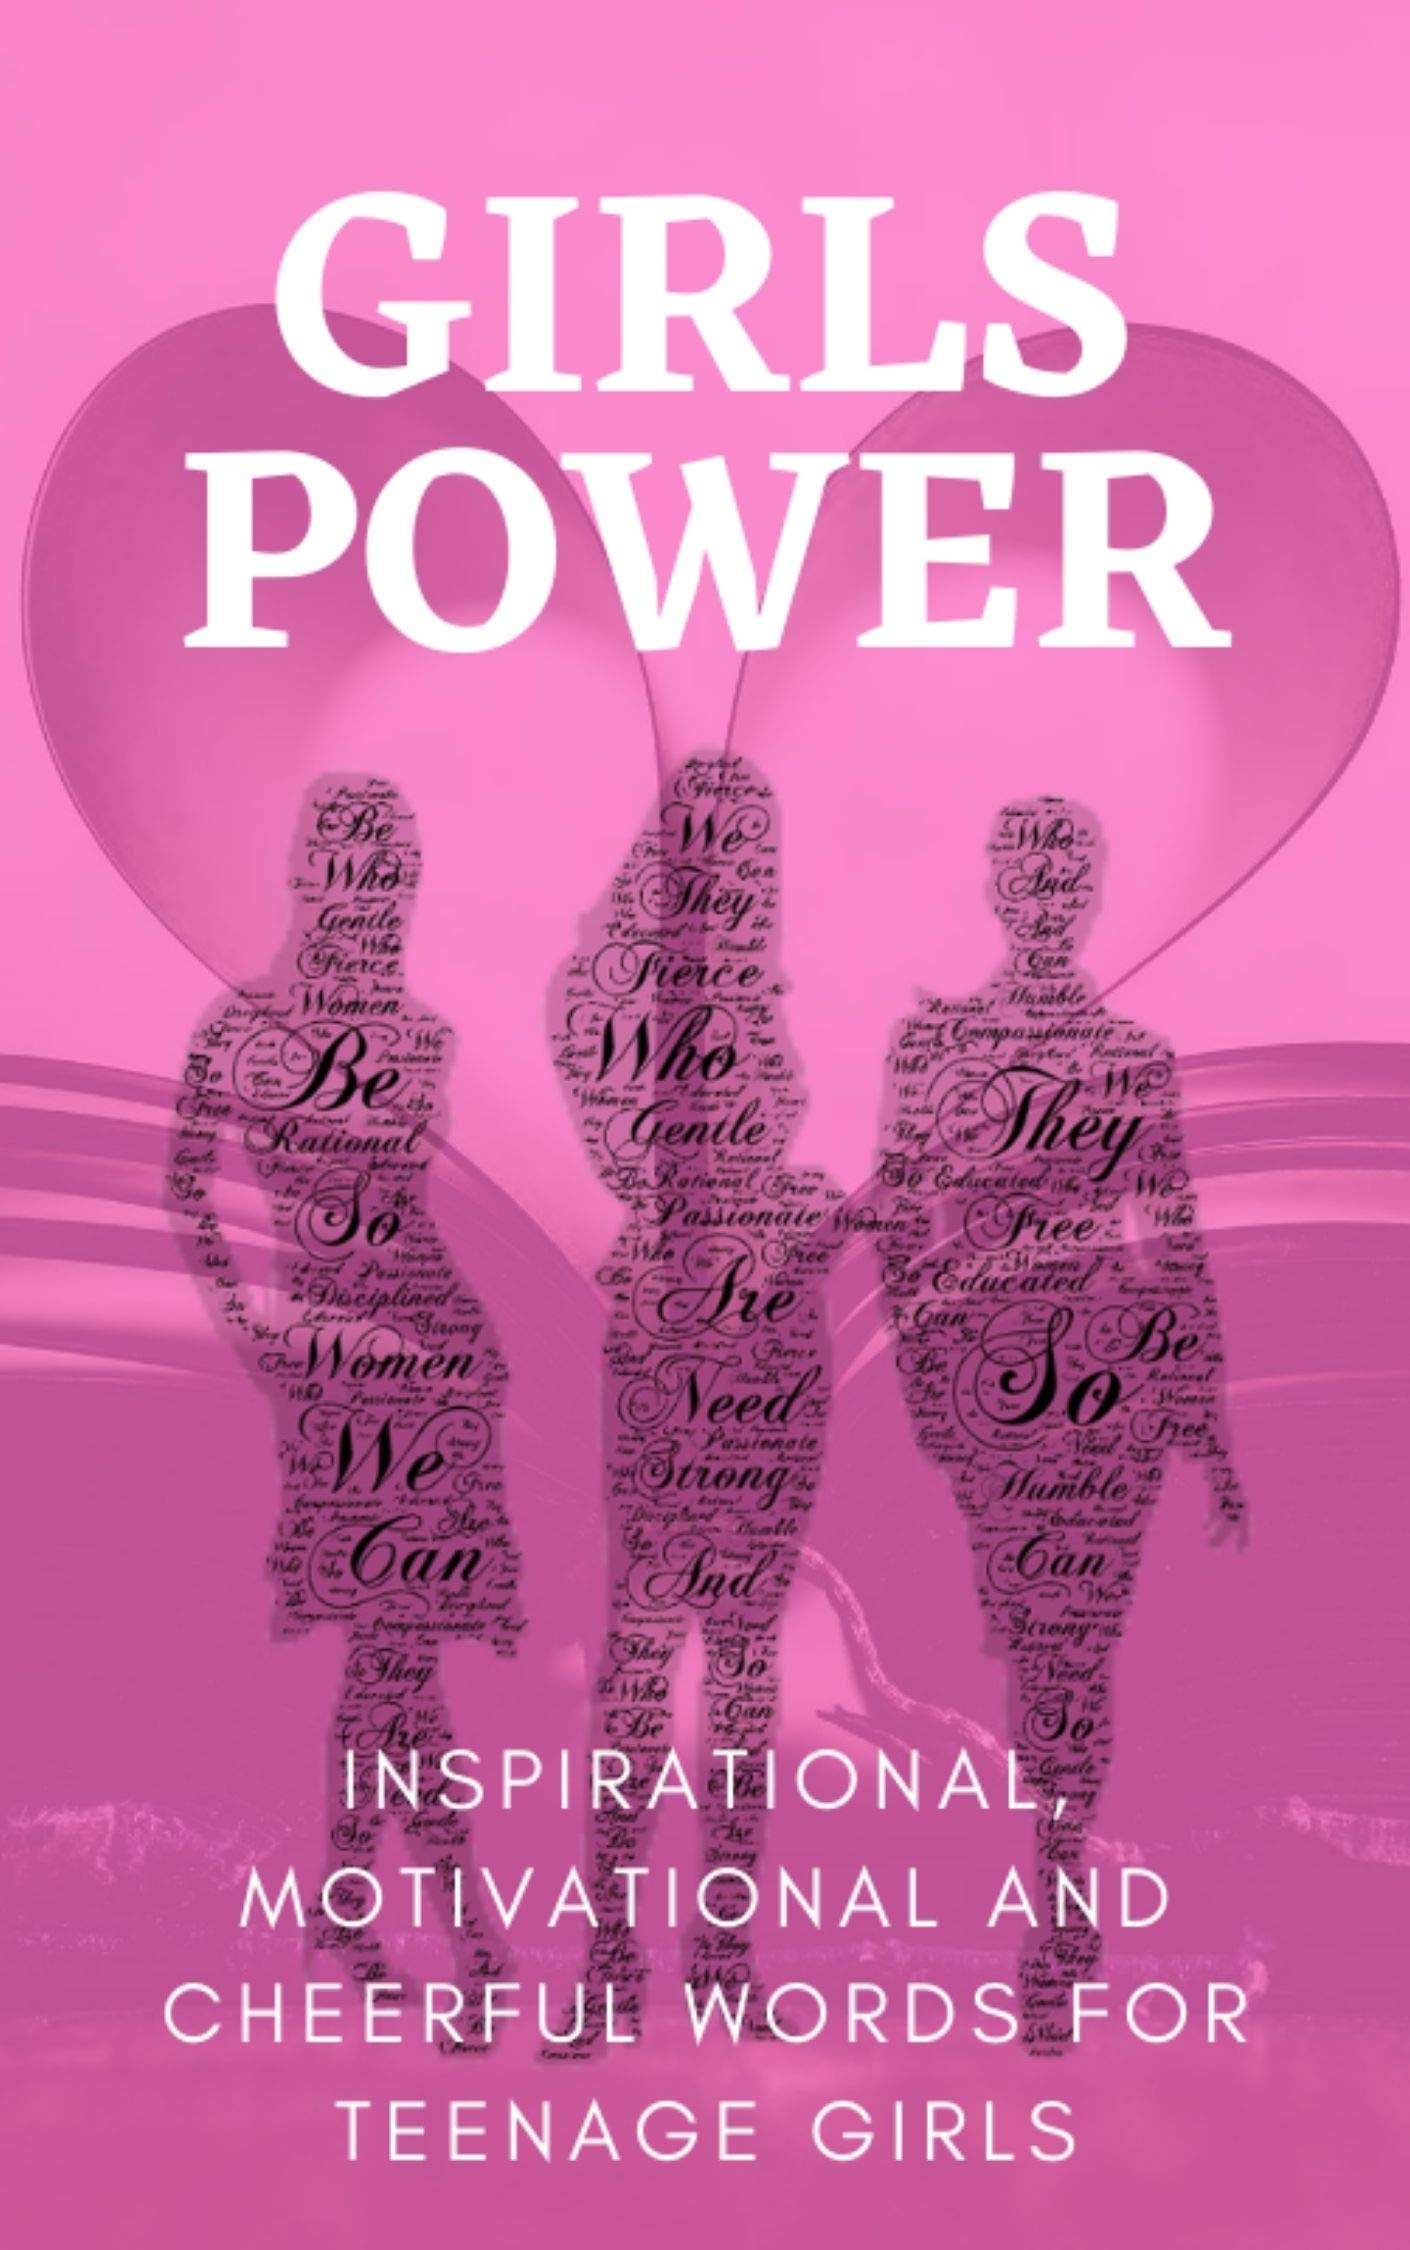 Girls Power | Inspirational, Motivational And Cheerful Words For Teenage Girls: Book To Young Women With Uplifting Quotes.